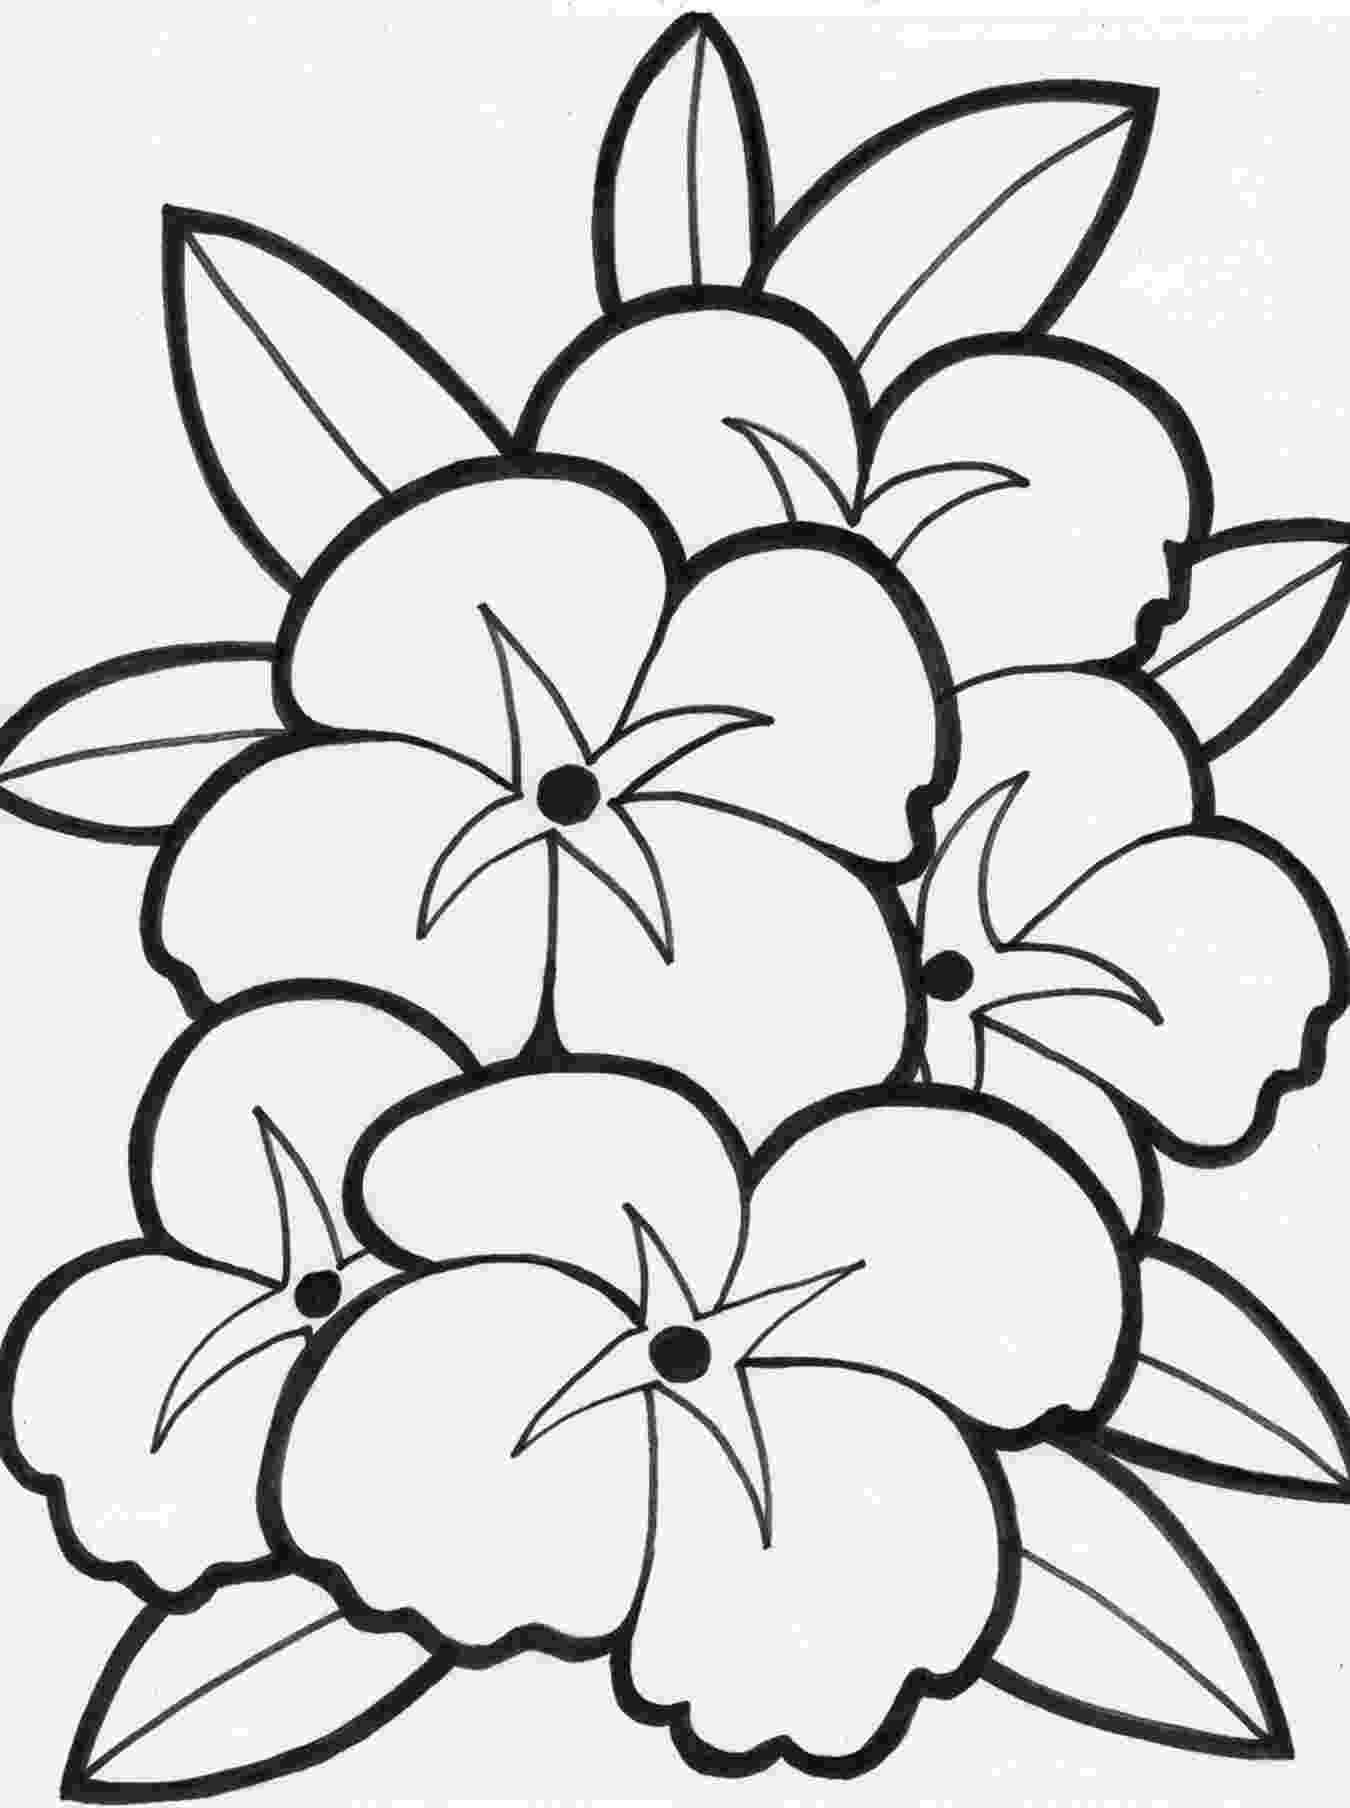 free flower pictures to print and color free printable flower coloring pages for kids best pictures and flower print color to free